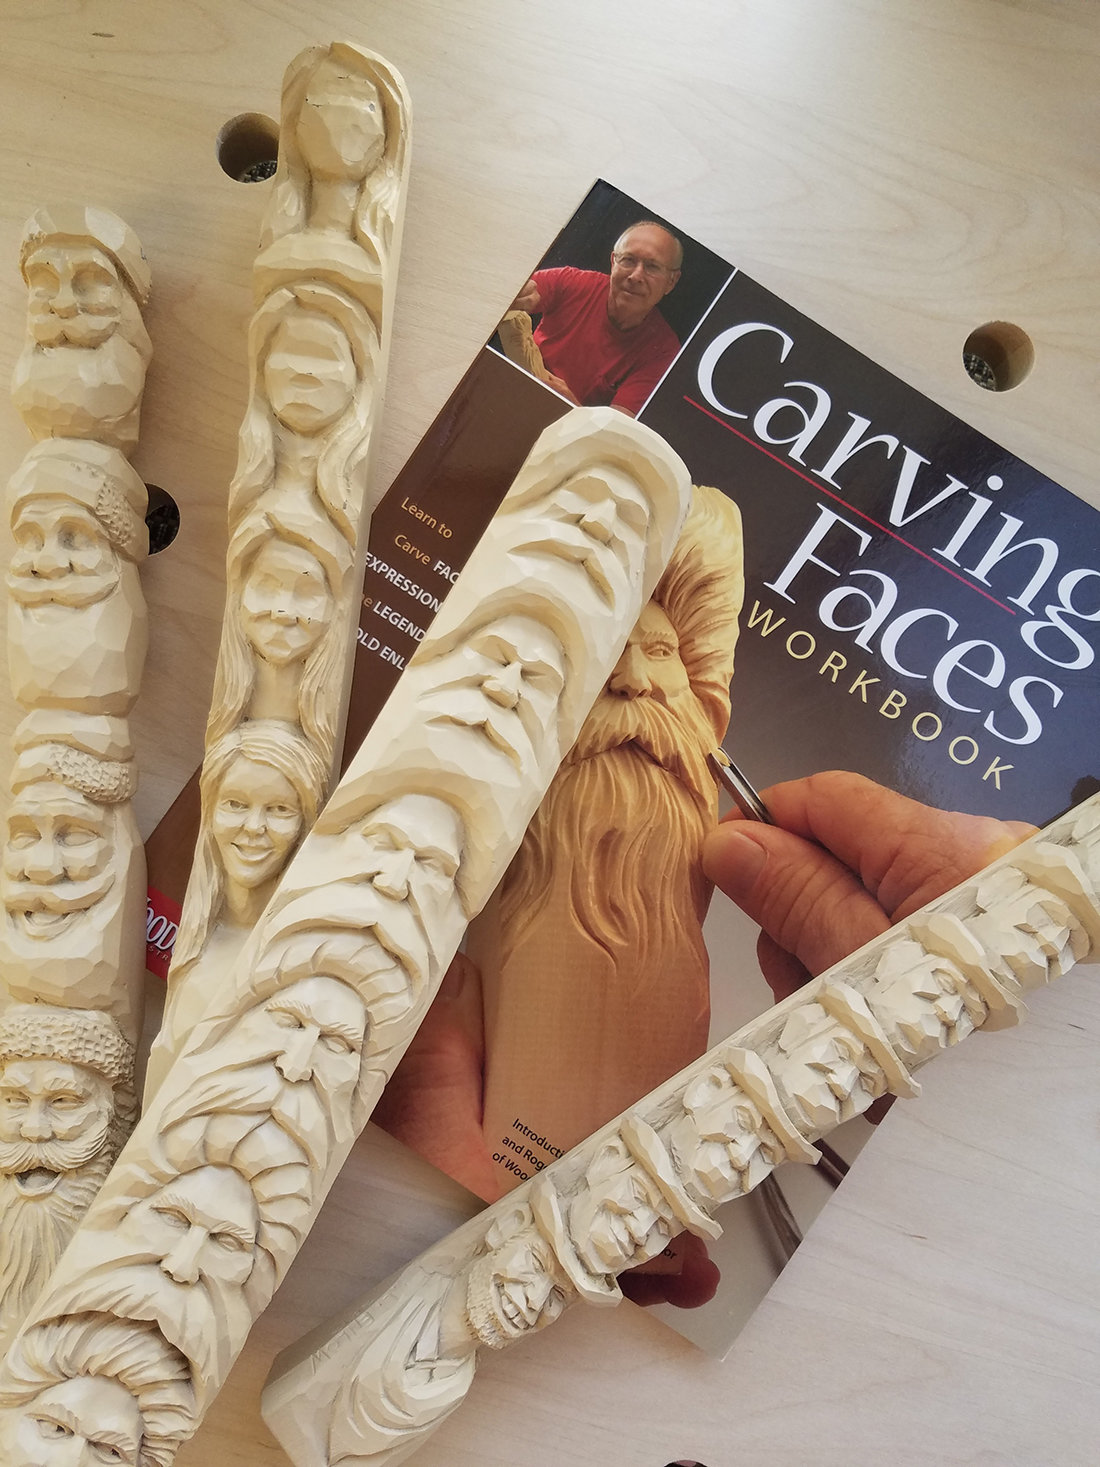 Carving Faces Workbook and study sticks